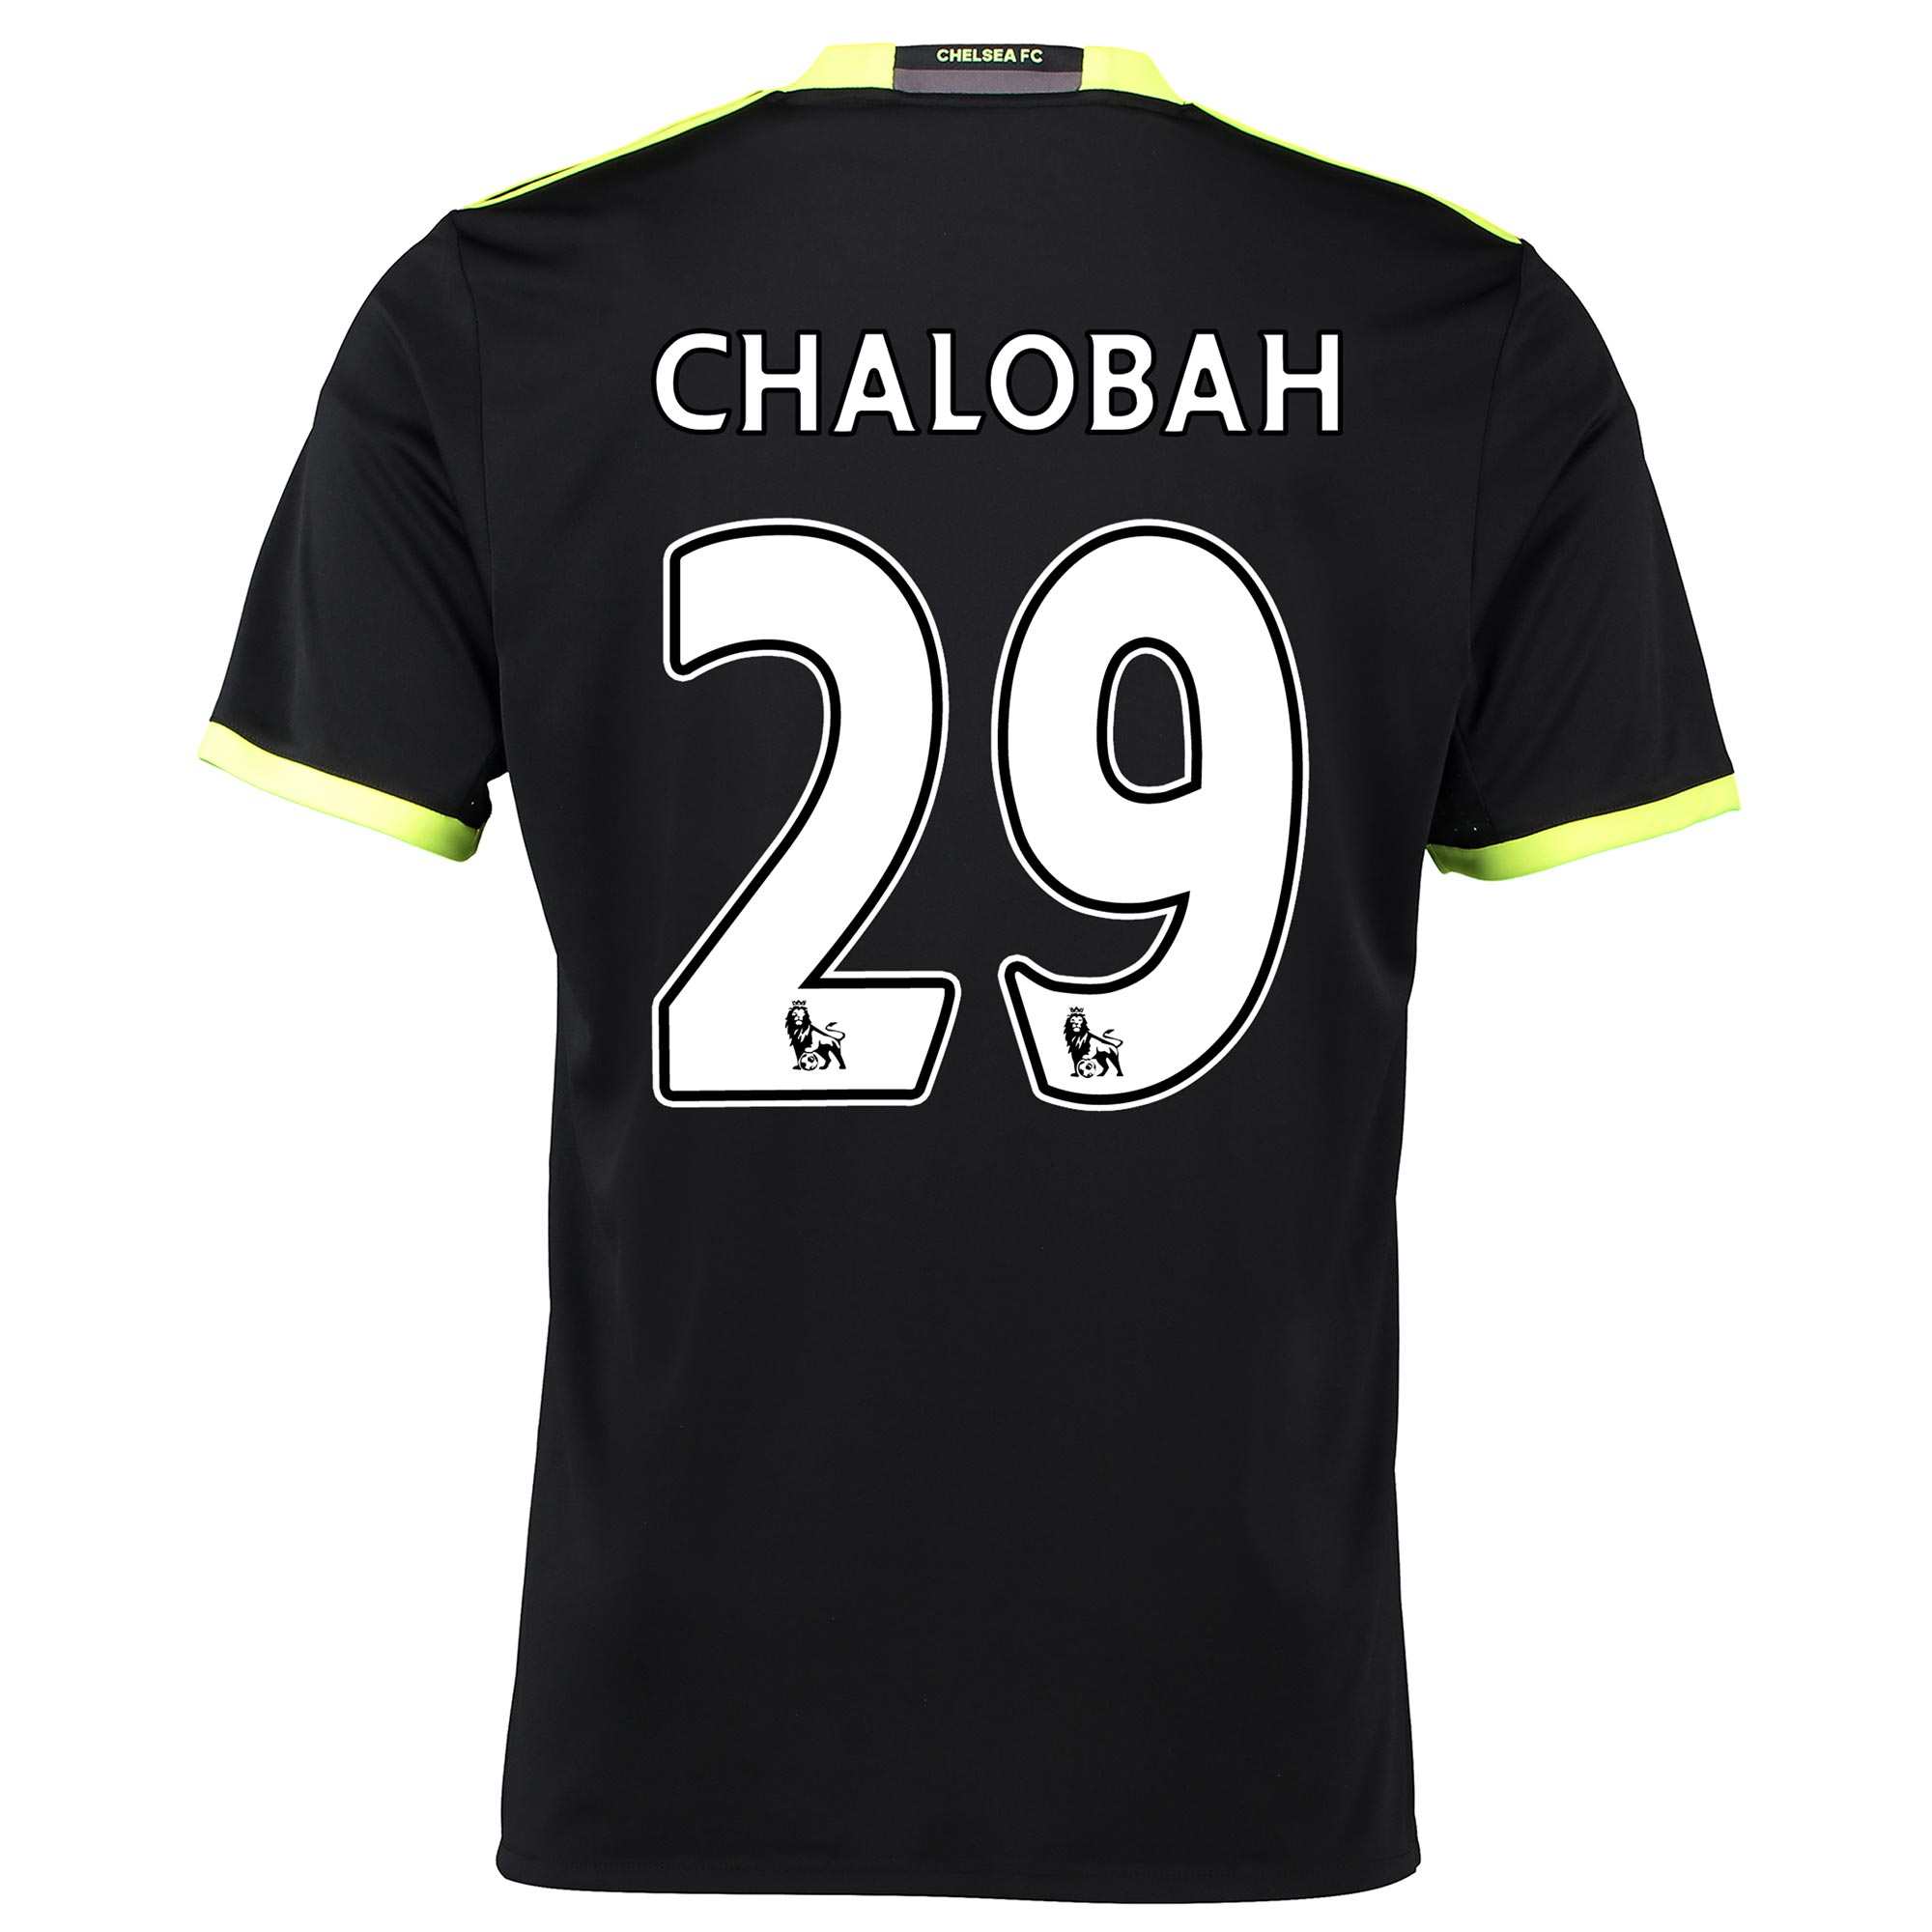 Chelsea Away Shirt 16-17 with Chalobah 29 printing